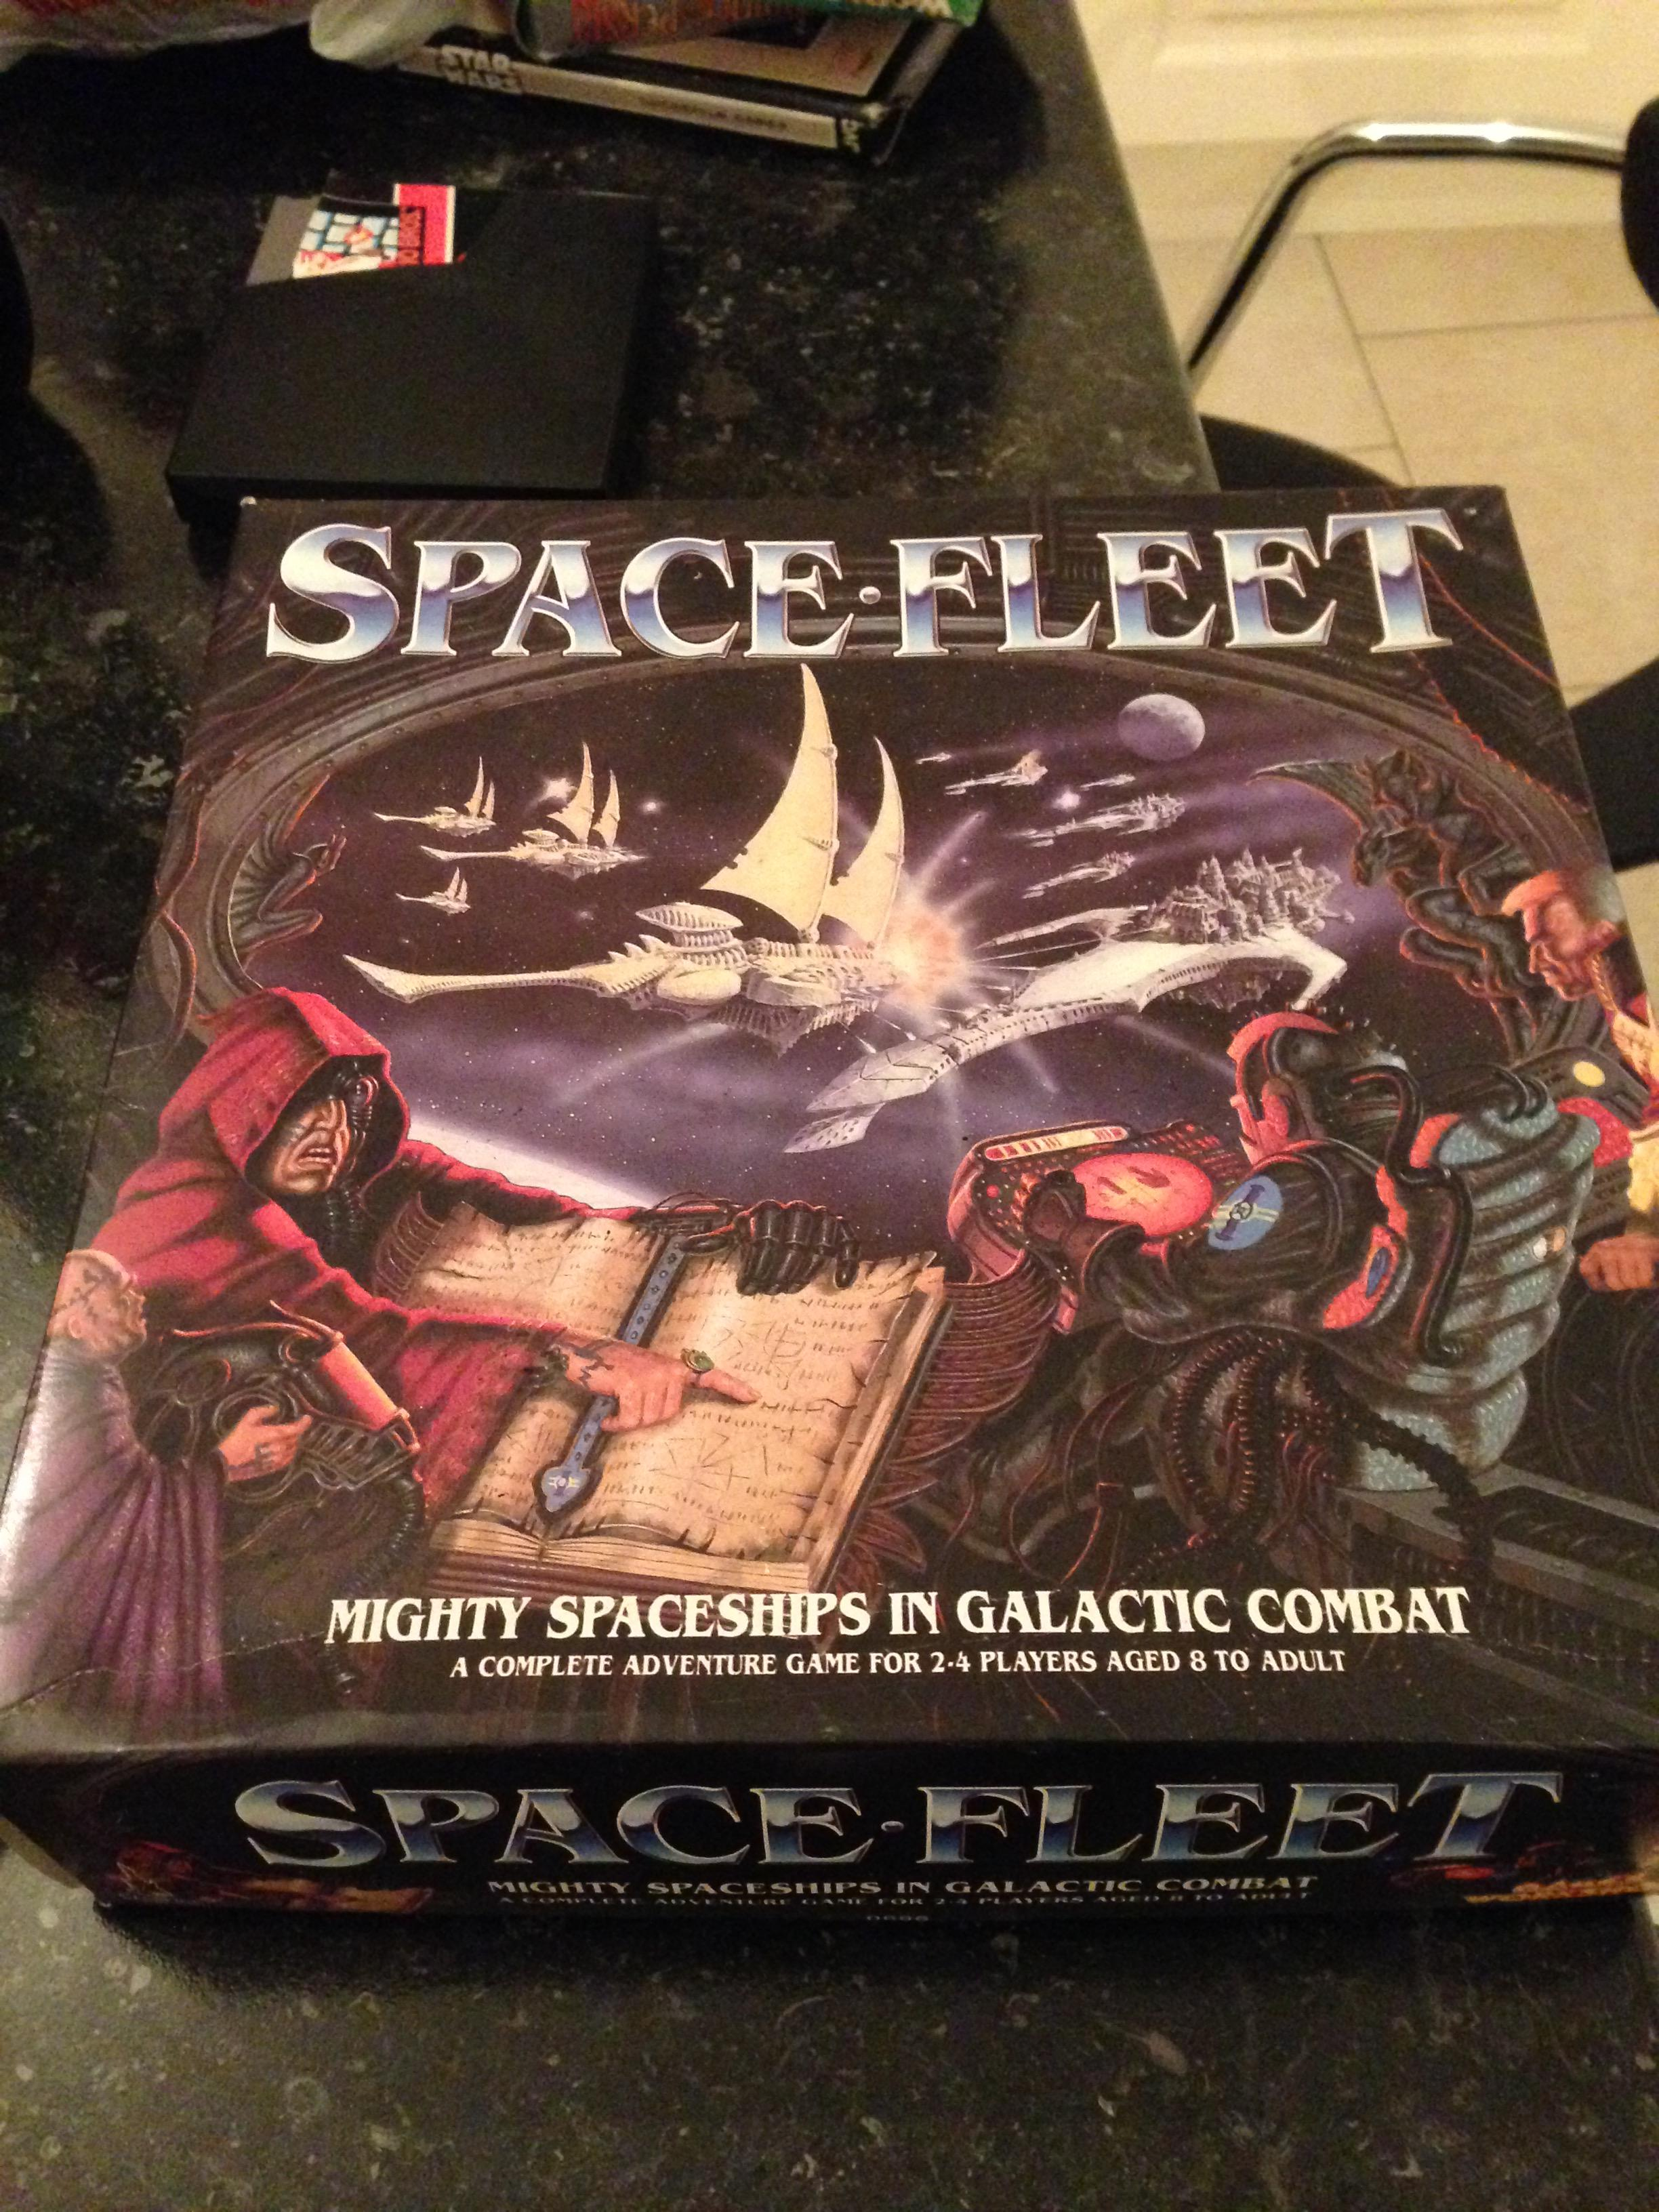 Battlefleet Gothic, Spacefleet